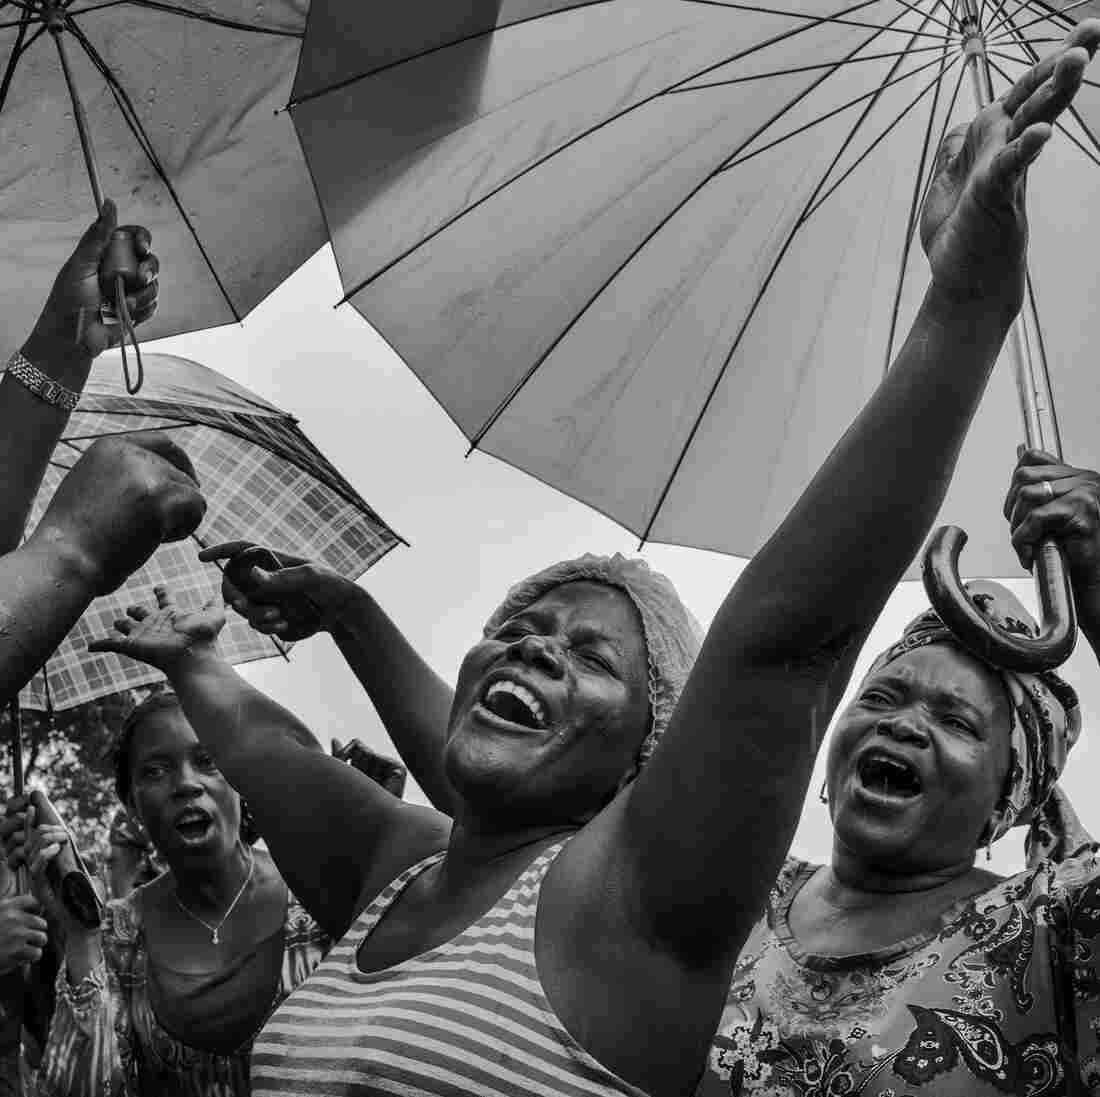 Ebola survivor Klubo Mulbah (center), a physician assistant who was infected by a patient, celebrates among friends and family on Sept. 24 in Monrovia, Liberia. She was among 15 Liberian patients who recovered from Ebola and were released from the ELWA 2 ebola treatment center.